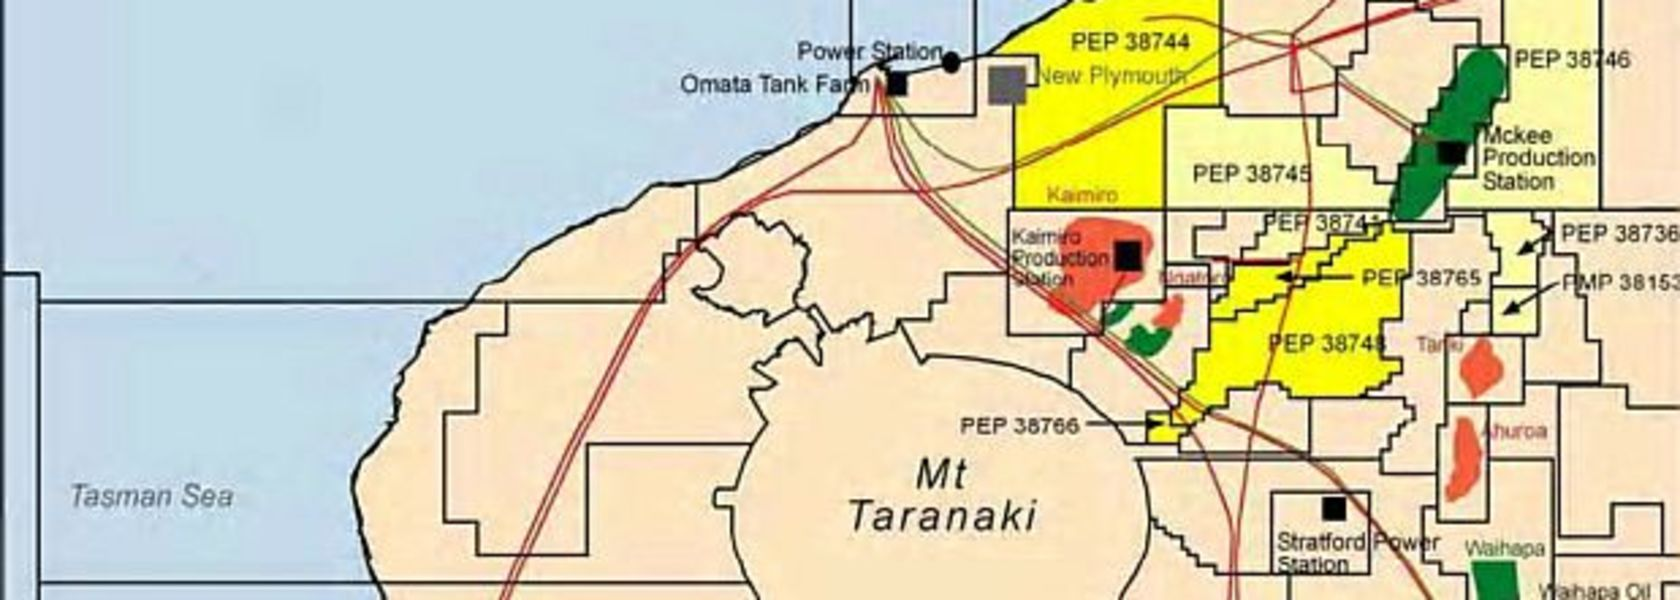 Tap to move out of onshore Taranaki